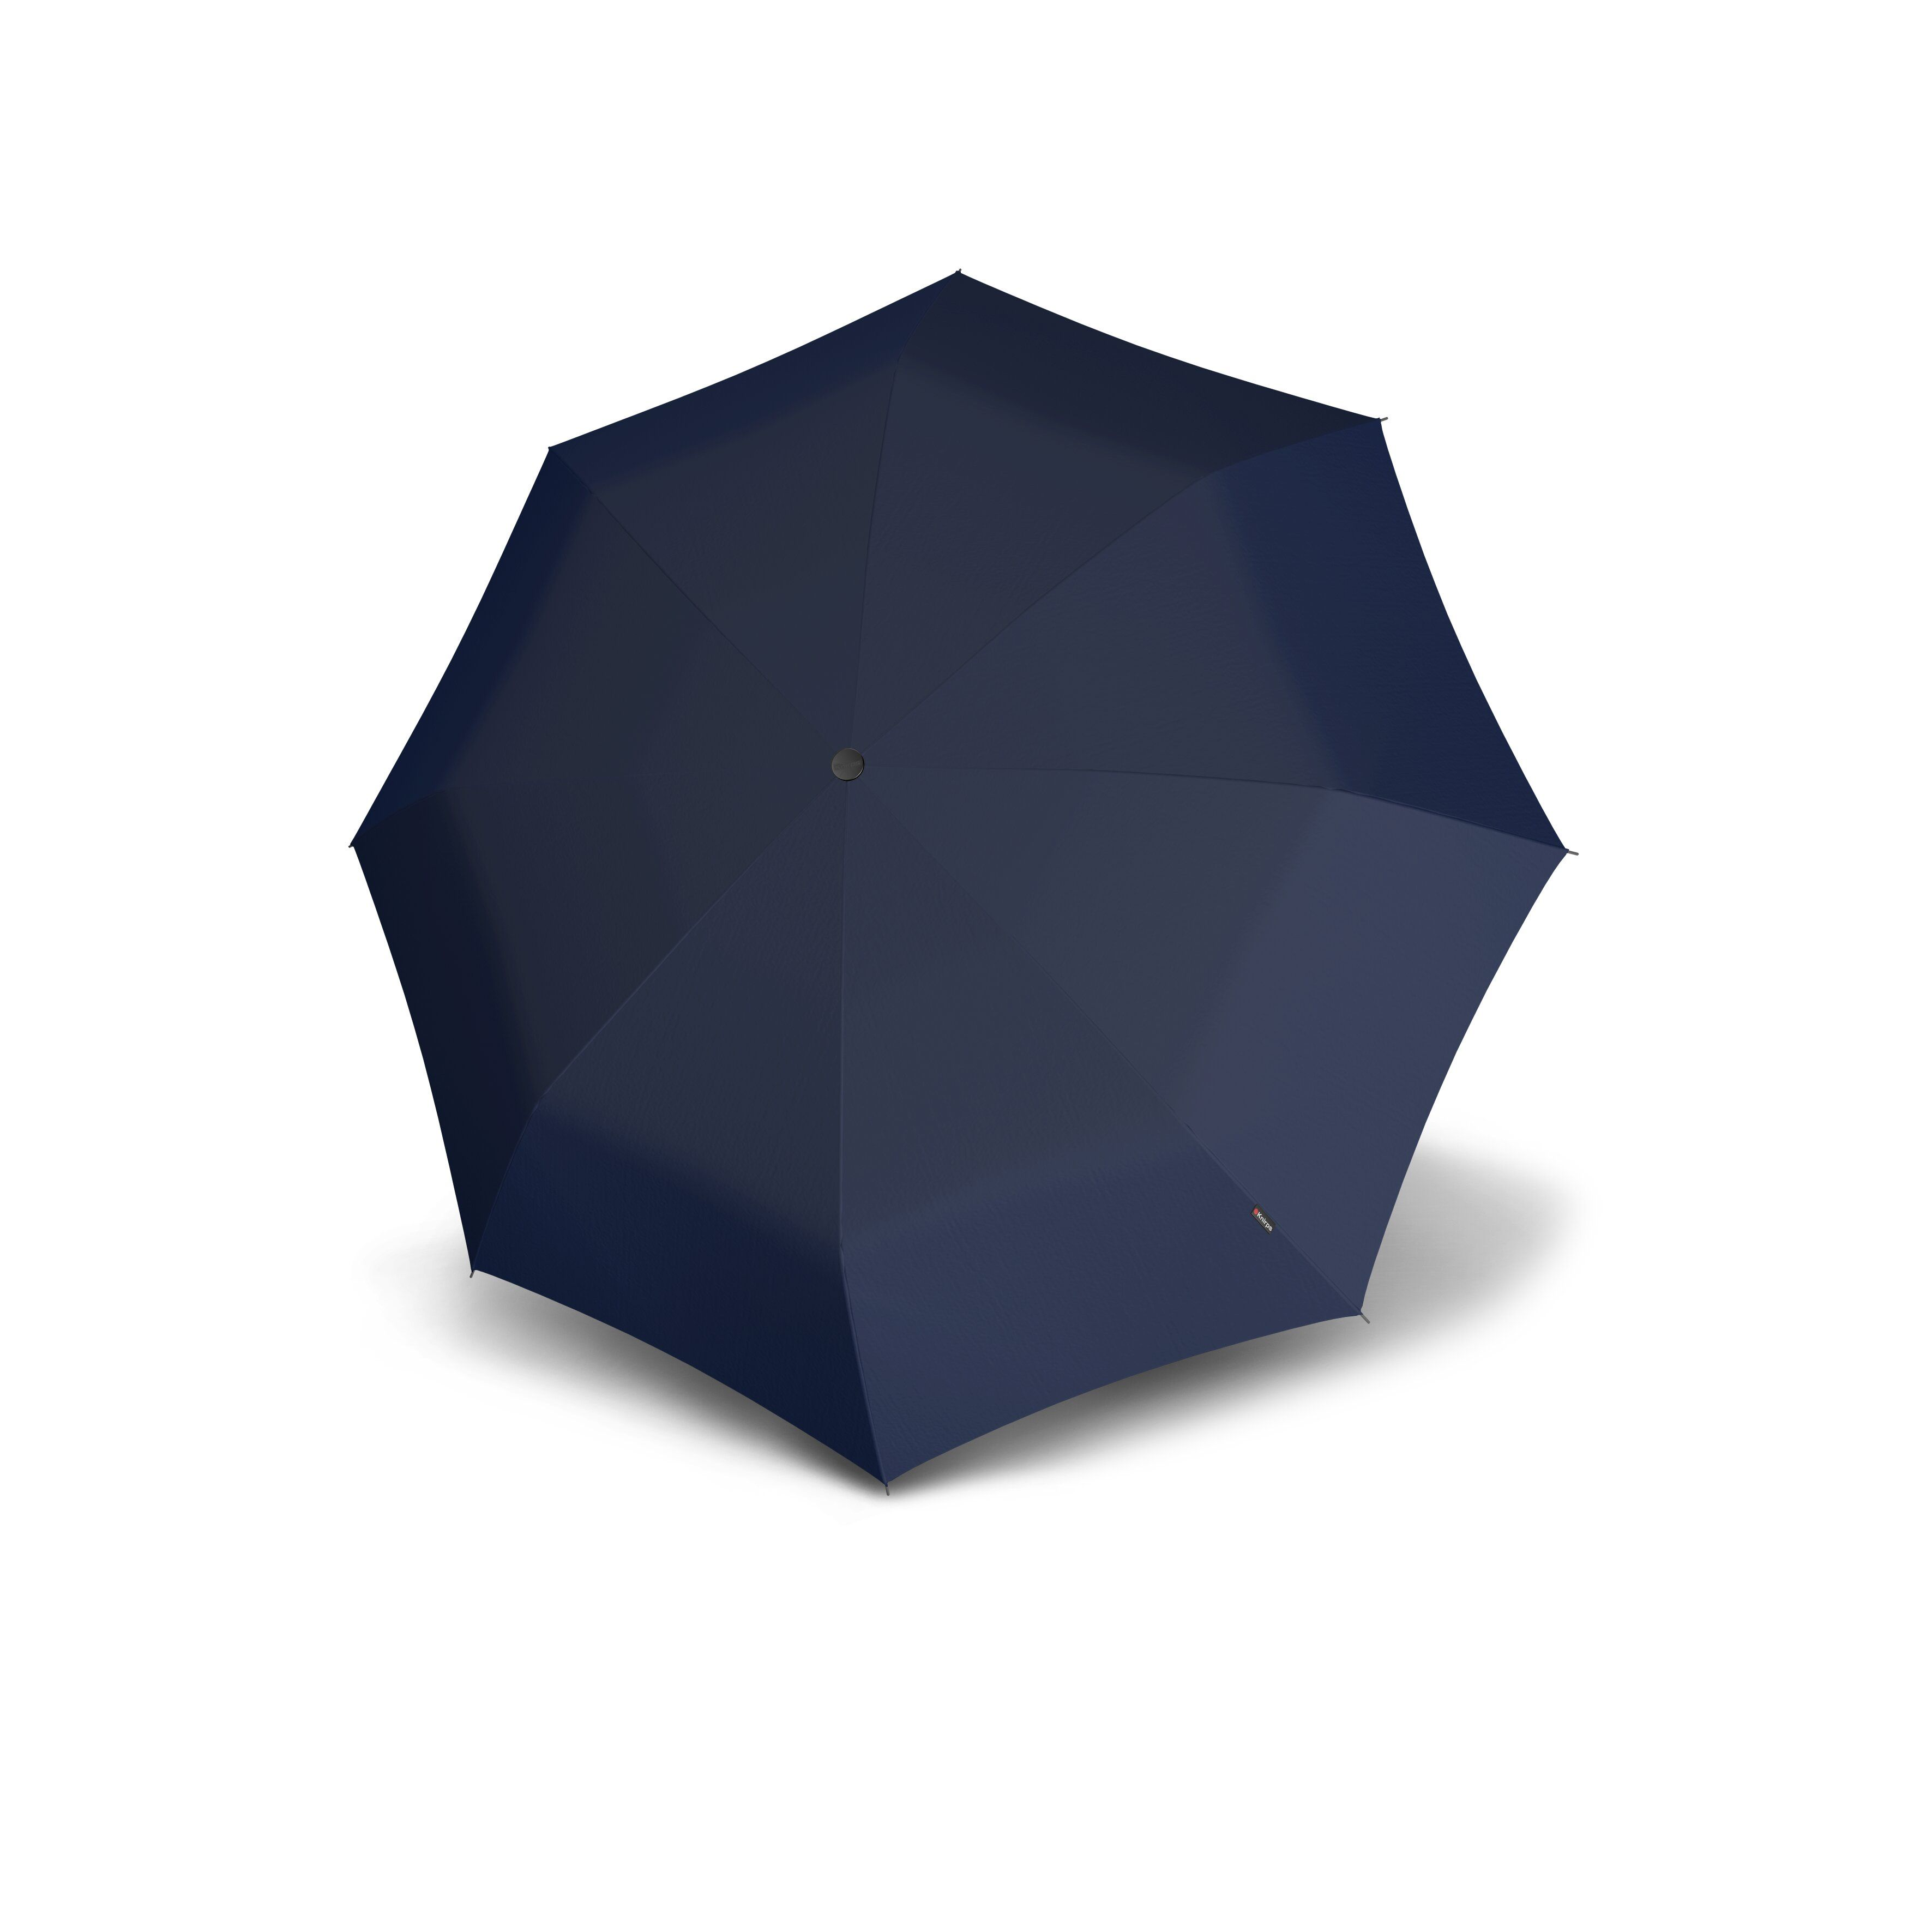 Knirps Umbrella T.400 extra large duomatic - photo 2